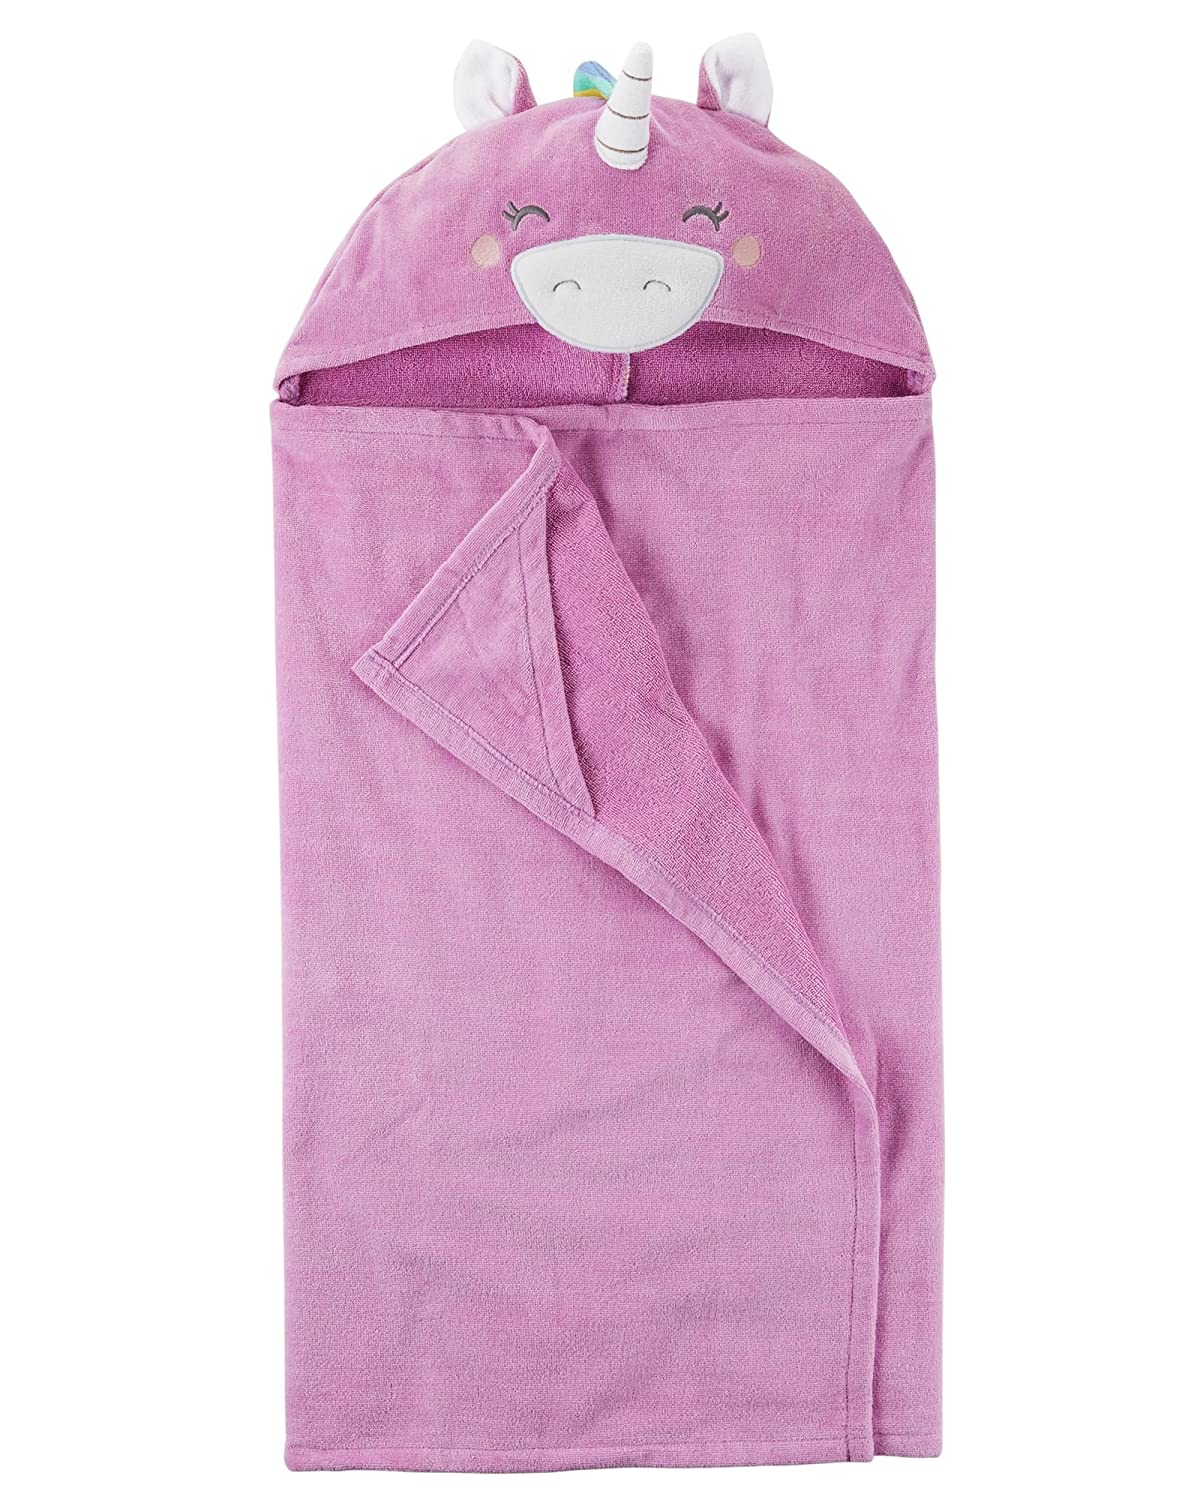 Carter's Girls' Hooded Towel